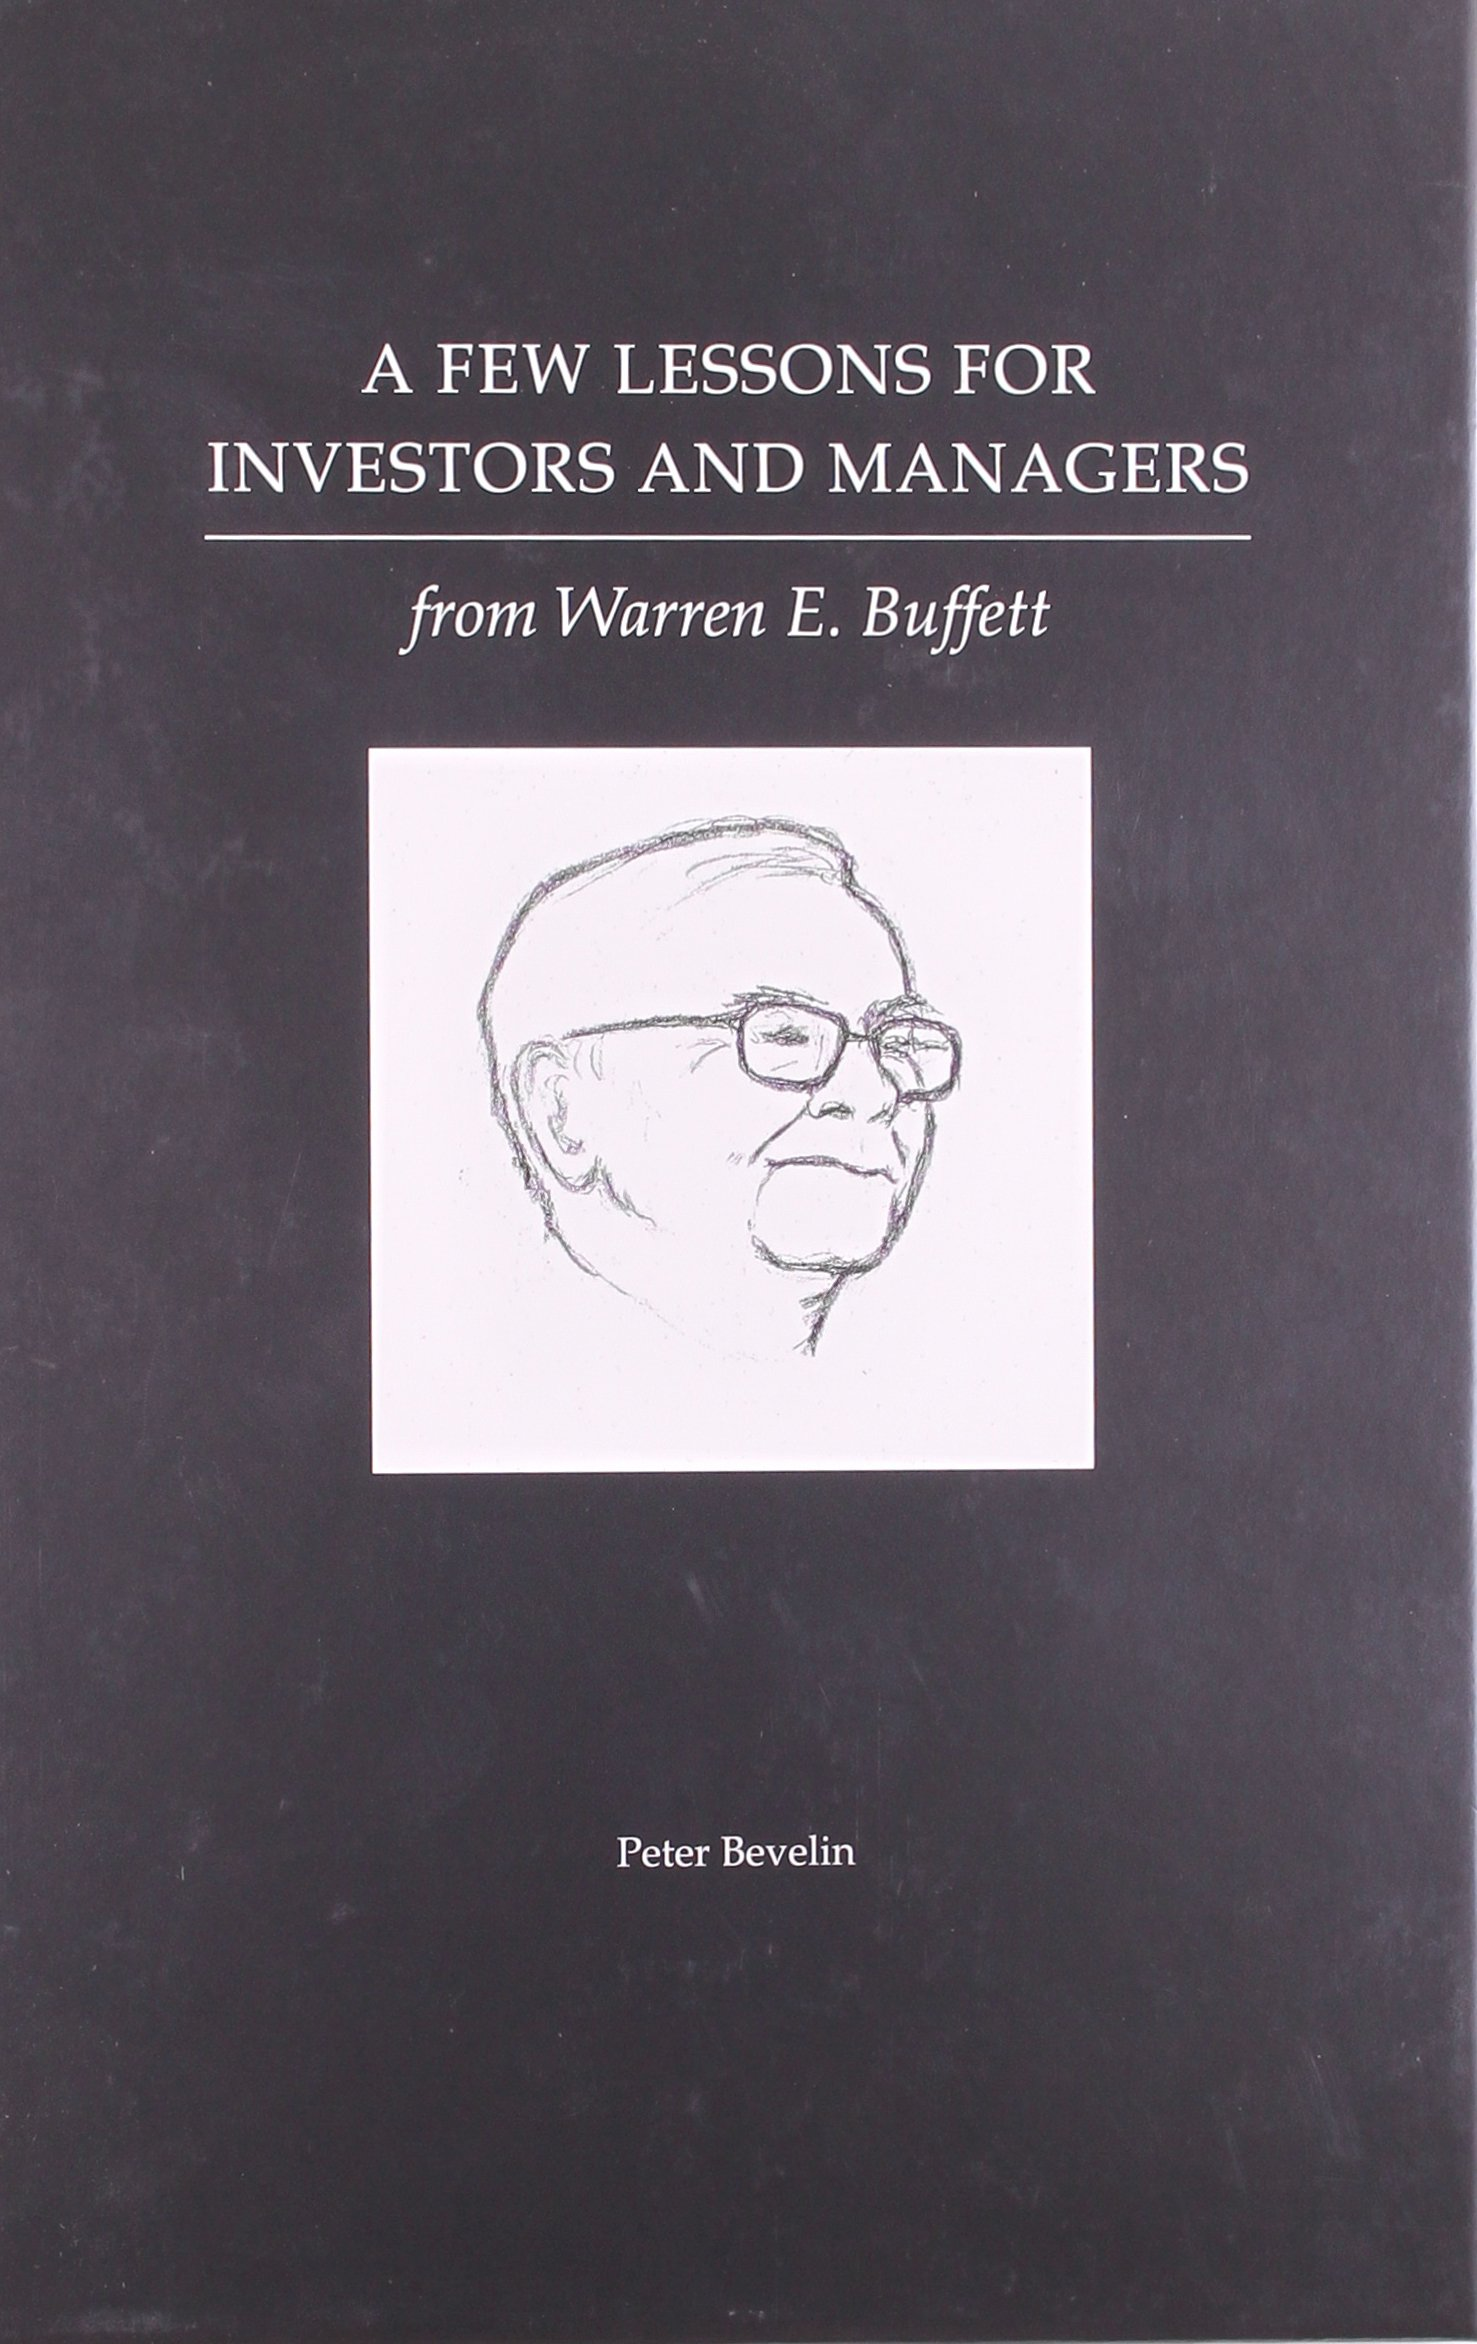 a few lessons for investors and managers from warren e buffett a few lessons for investors and managers from warren e buffett peter bevelin warren buffett 9781578647453 com books